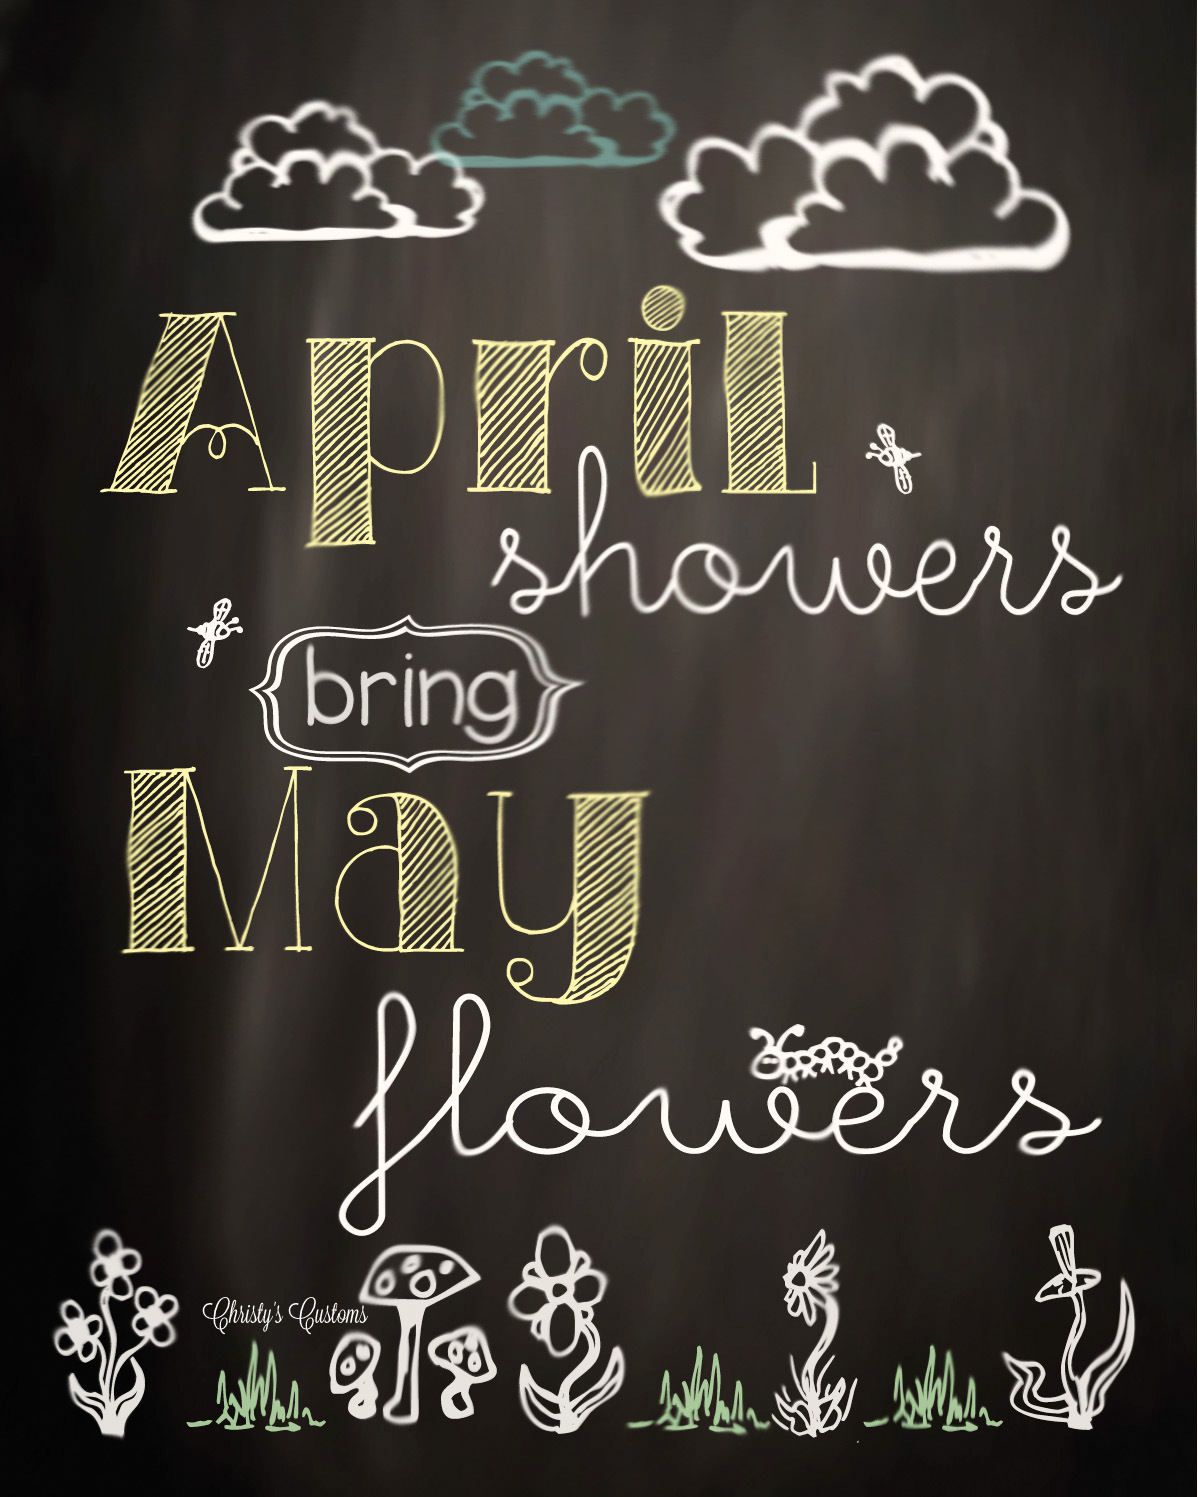 april and what phrase suits april better than this one